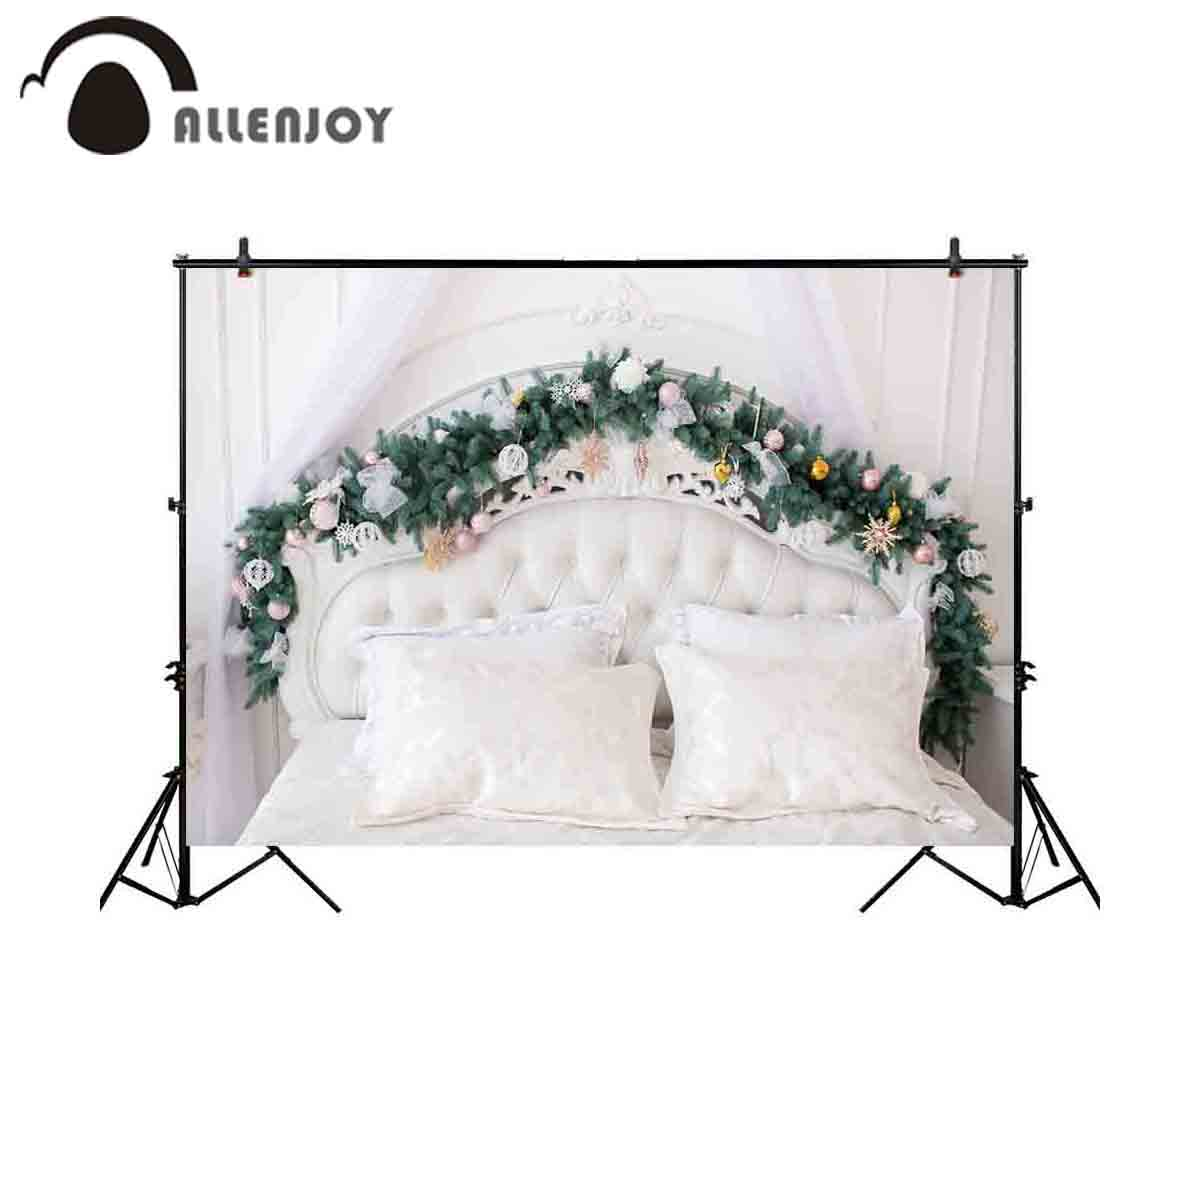 Allenjoy photography background Christmas headboard tufted pine tree leaf backdrop photocall photo studio photobooth fabric